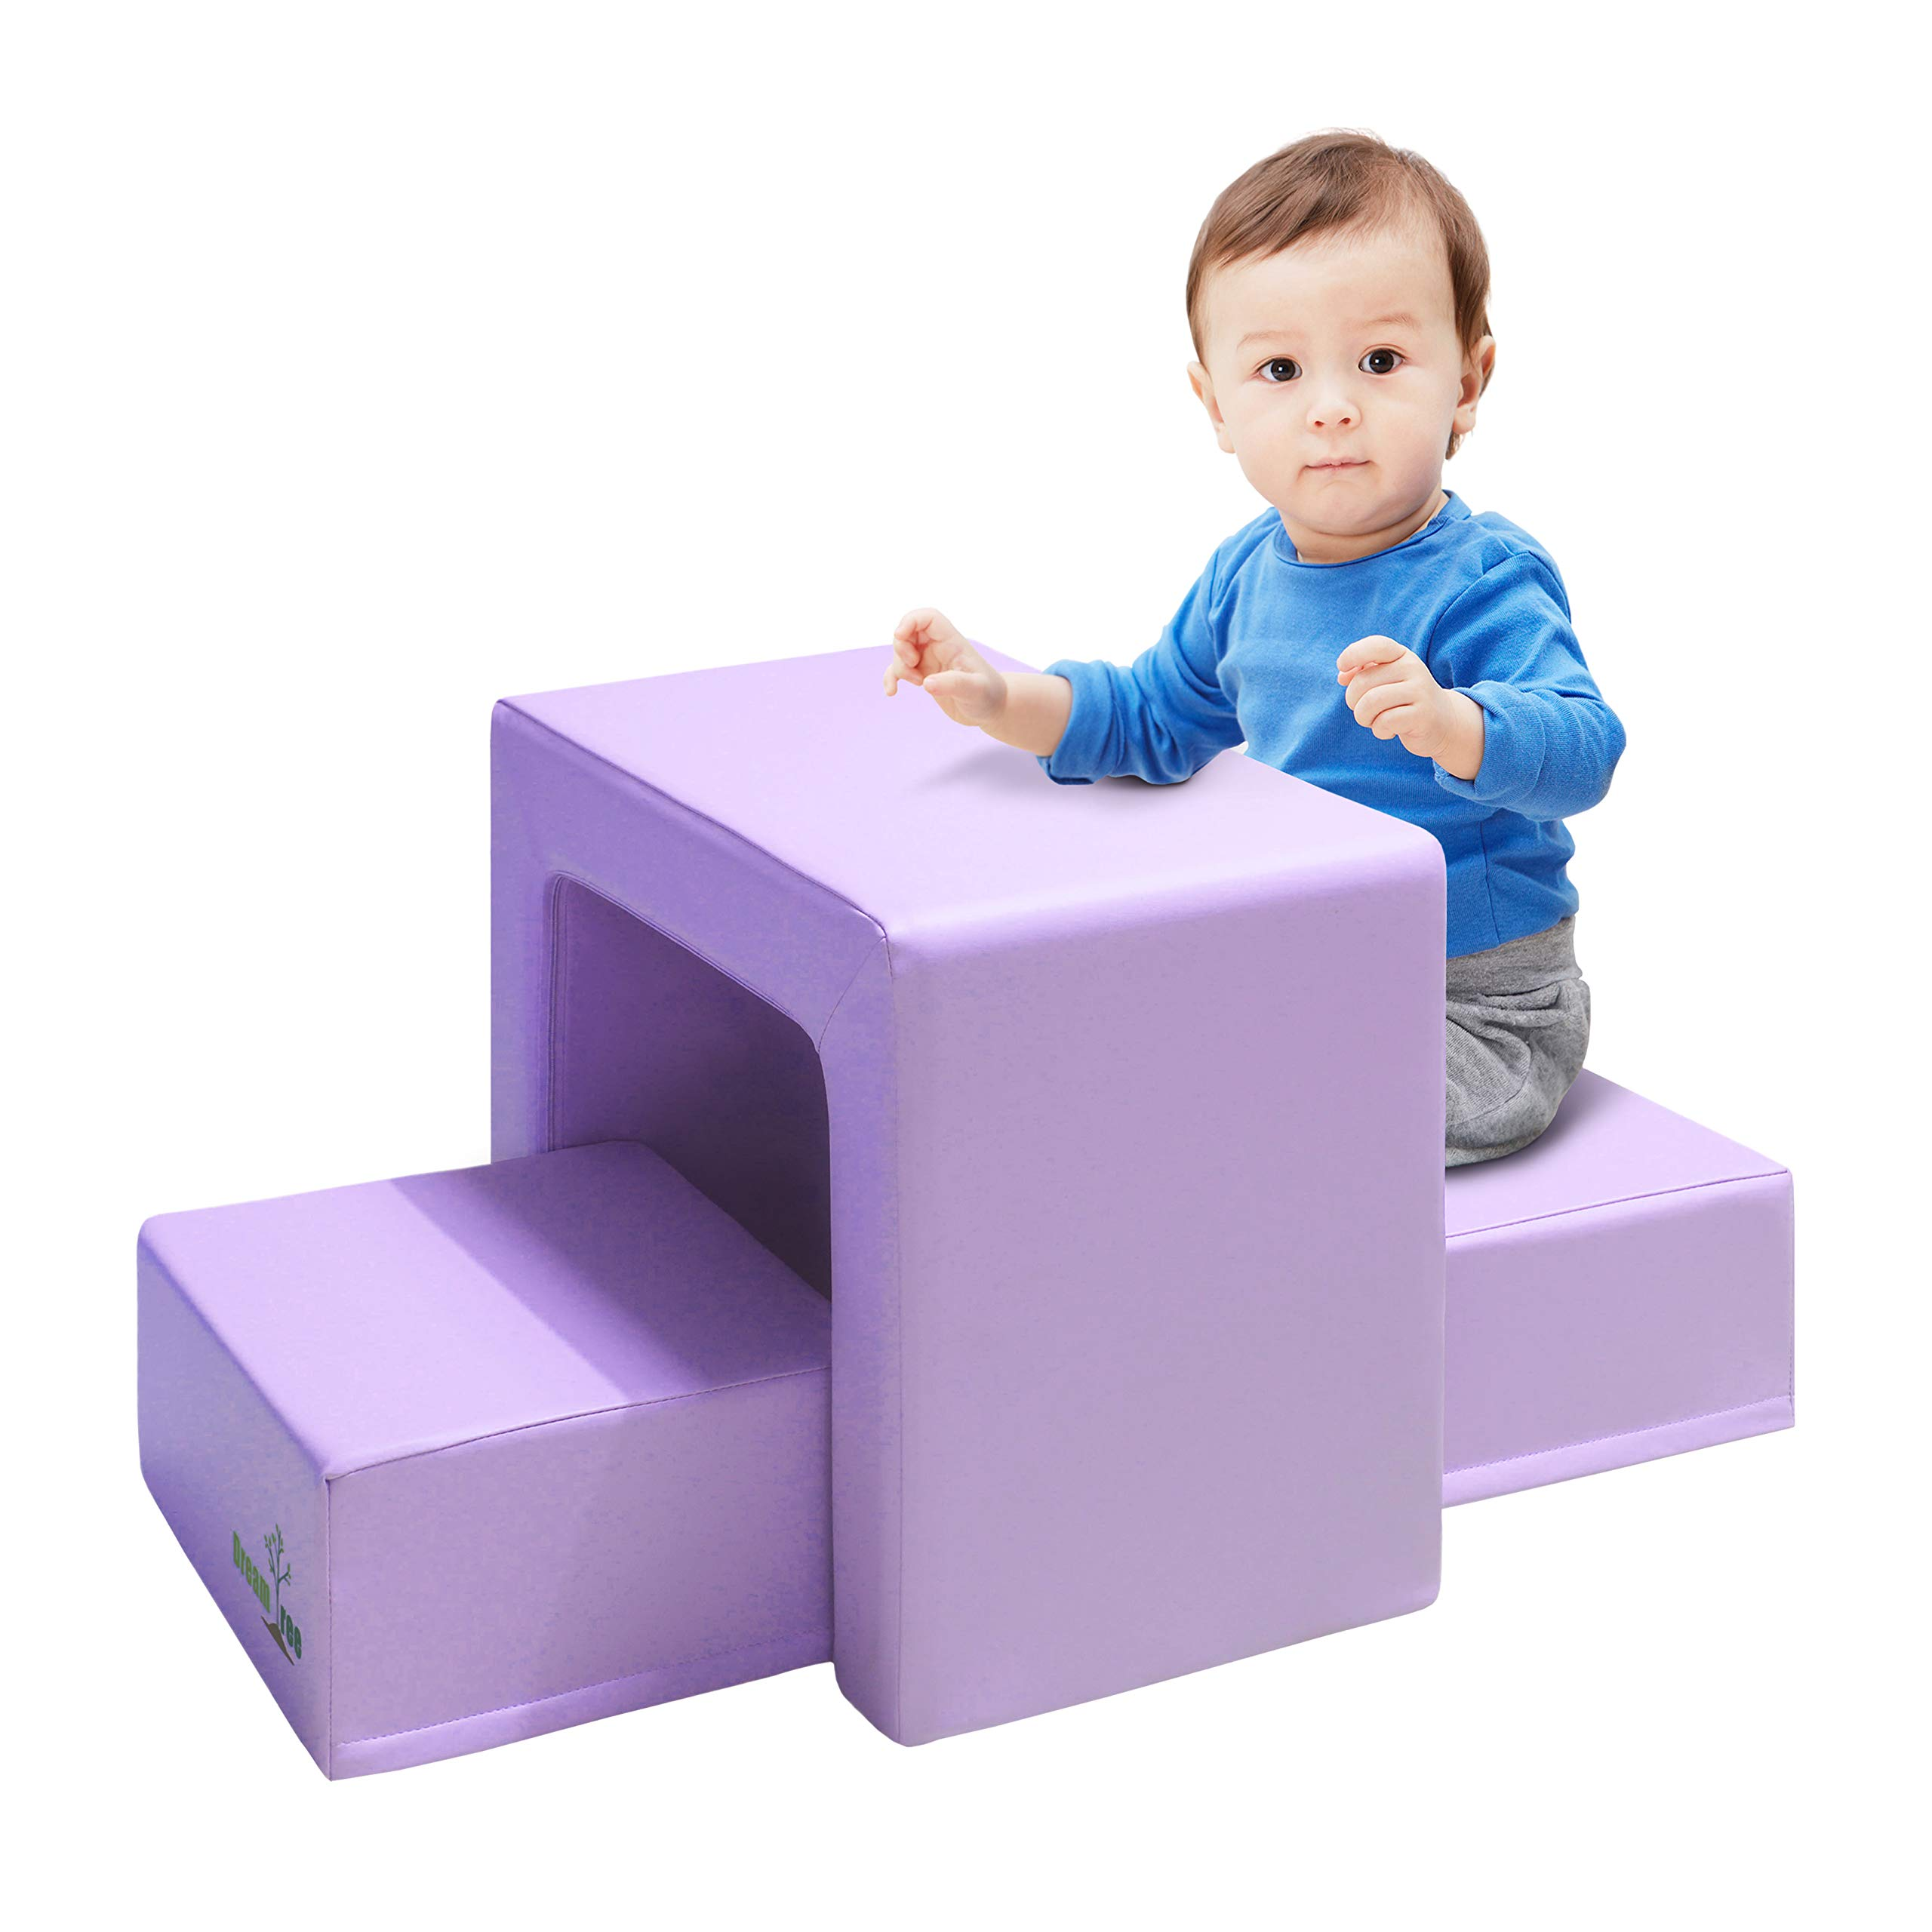 Dream Tree Toddler Table and Chair Set (Stool Type) Washable, Safe Non-Toxic CPSIA Compliant Soft Foam Furniture for Baby, Kids, and Child - Lavender